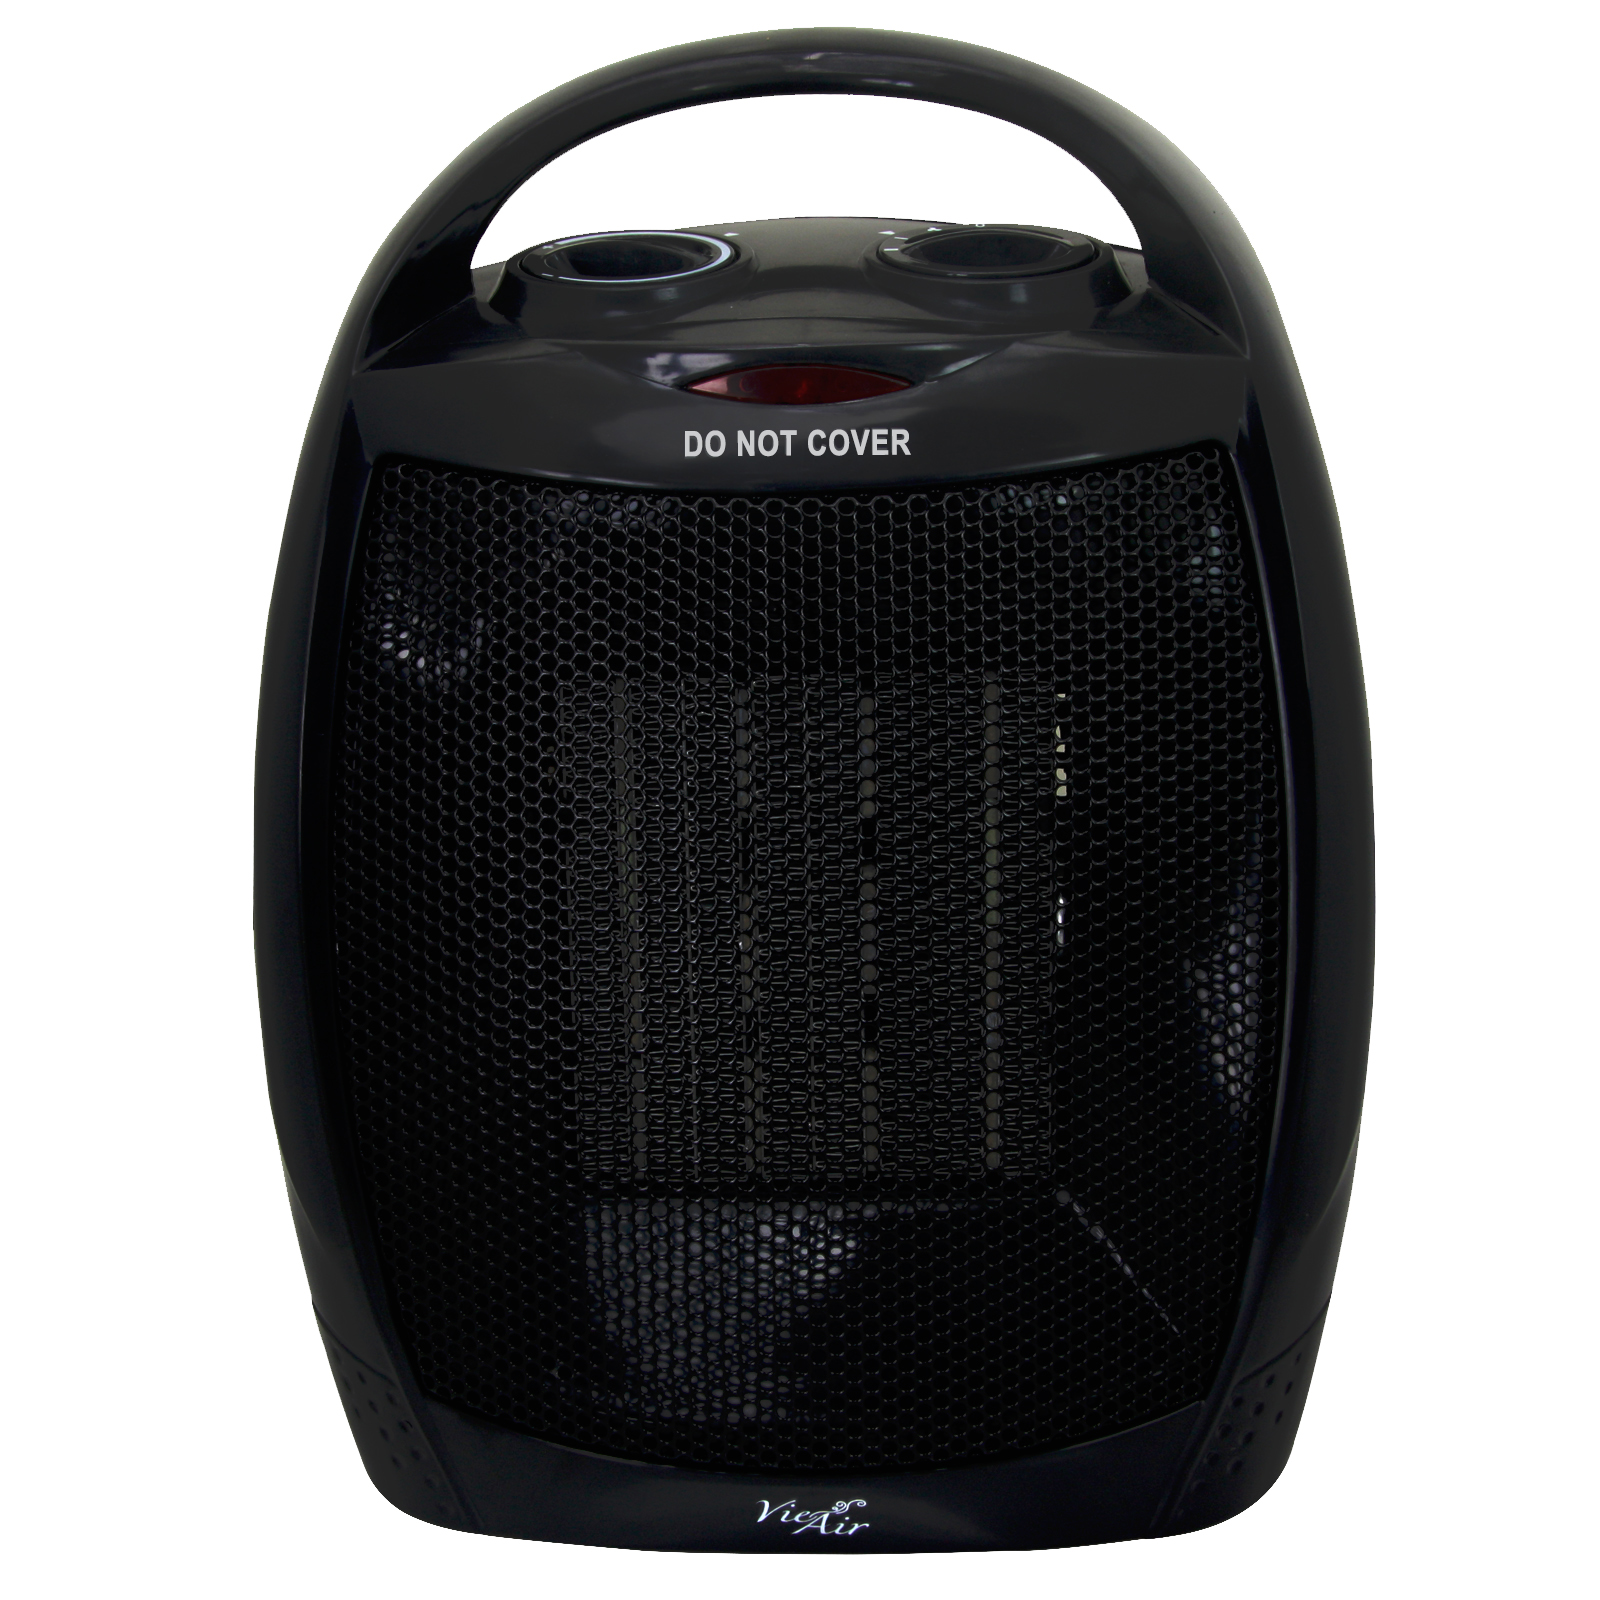 Vie Air 1500W Portable 3-Settings Black Ceramic Heater with Adjustable Thermostat